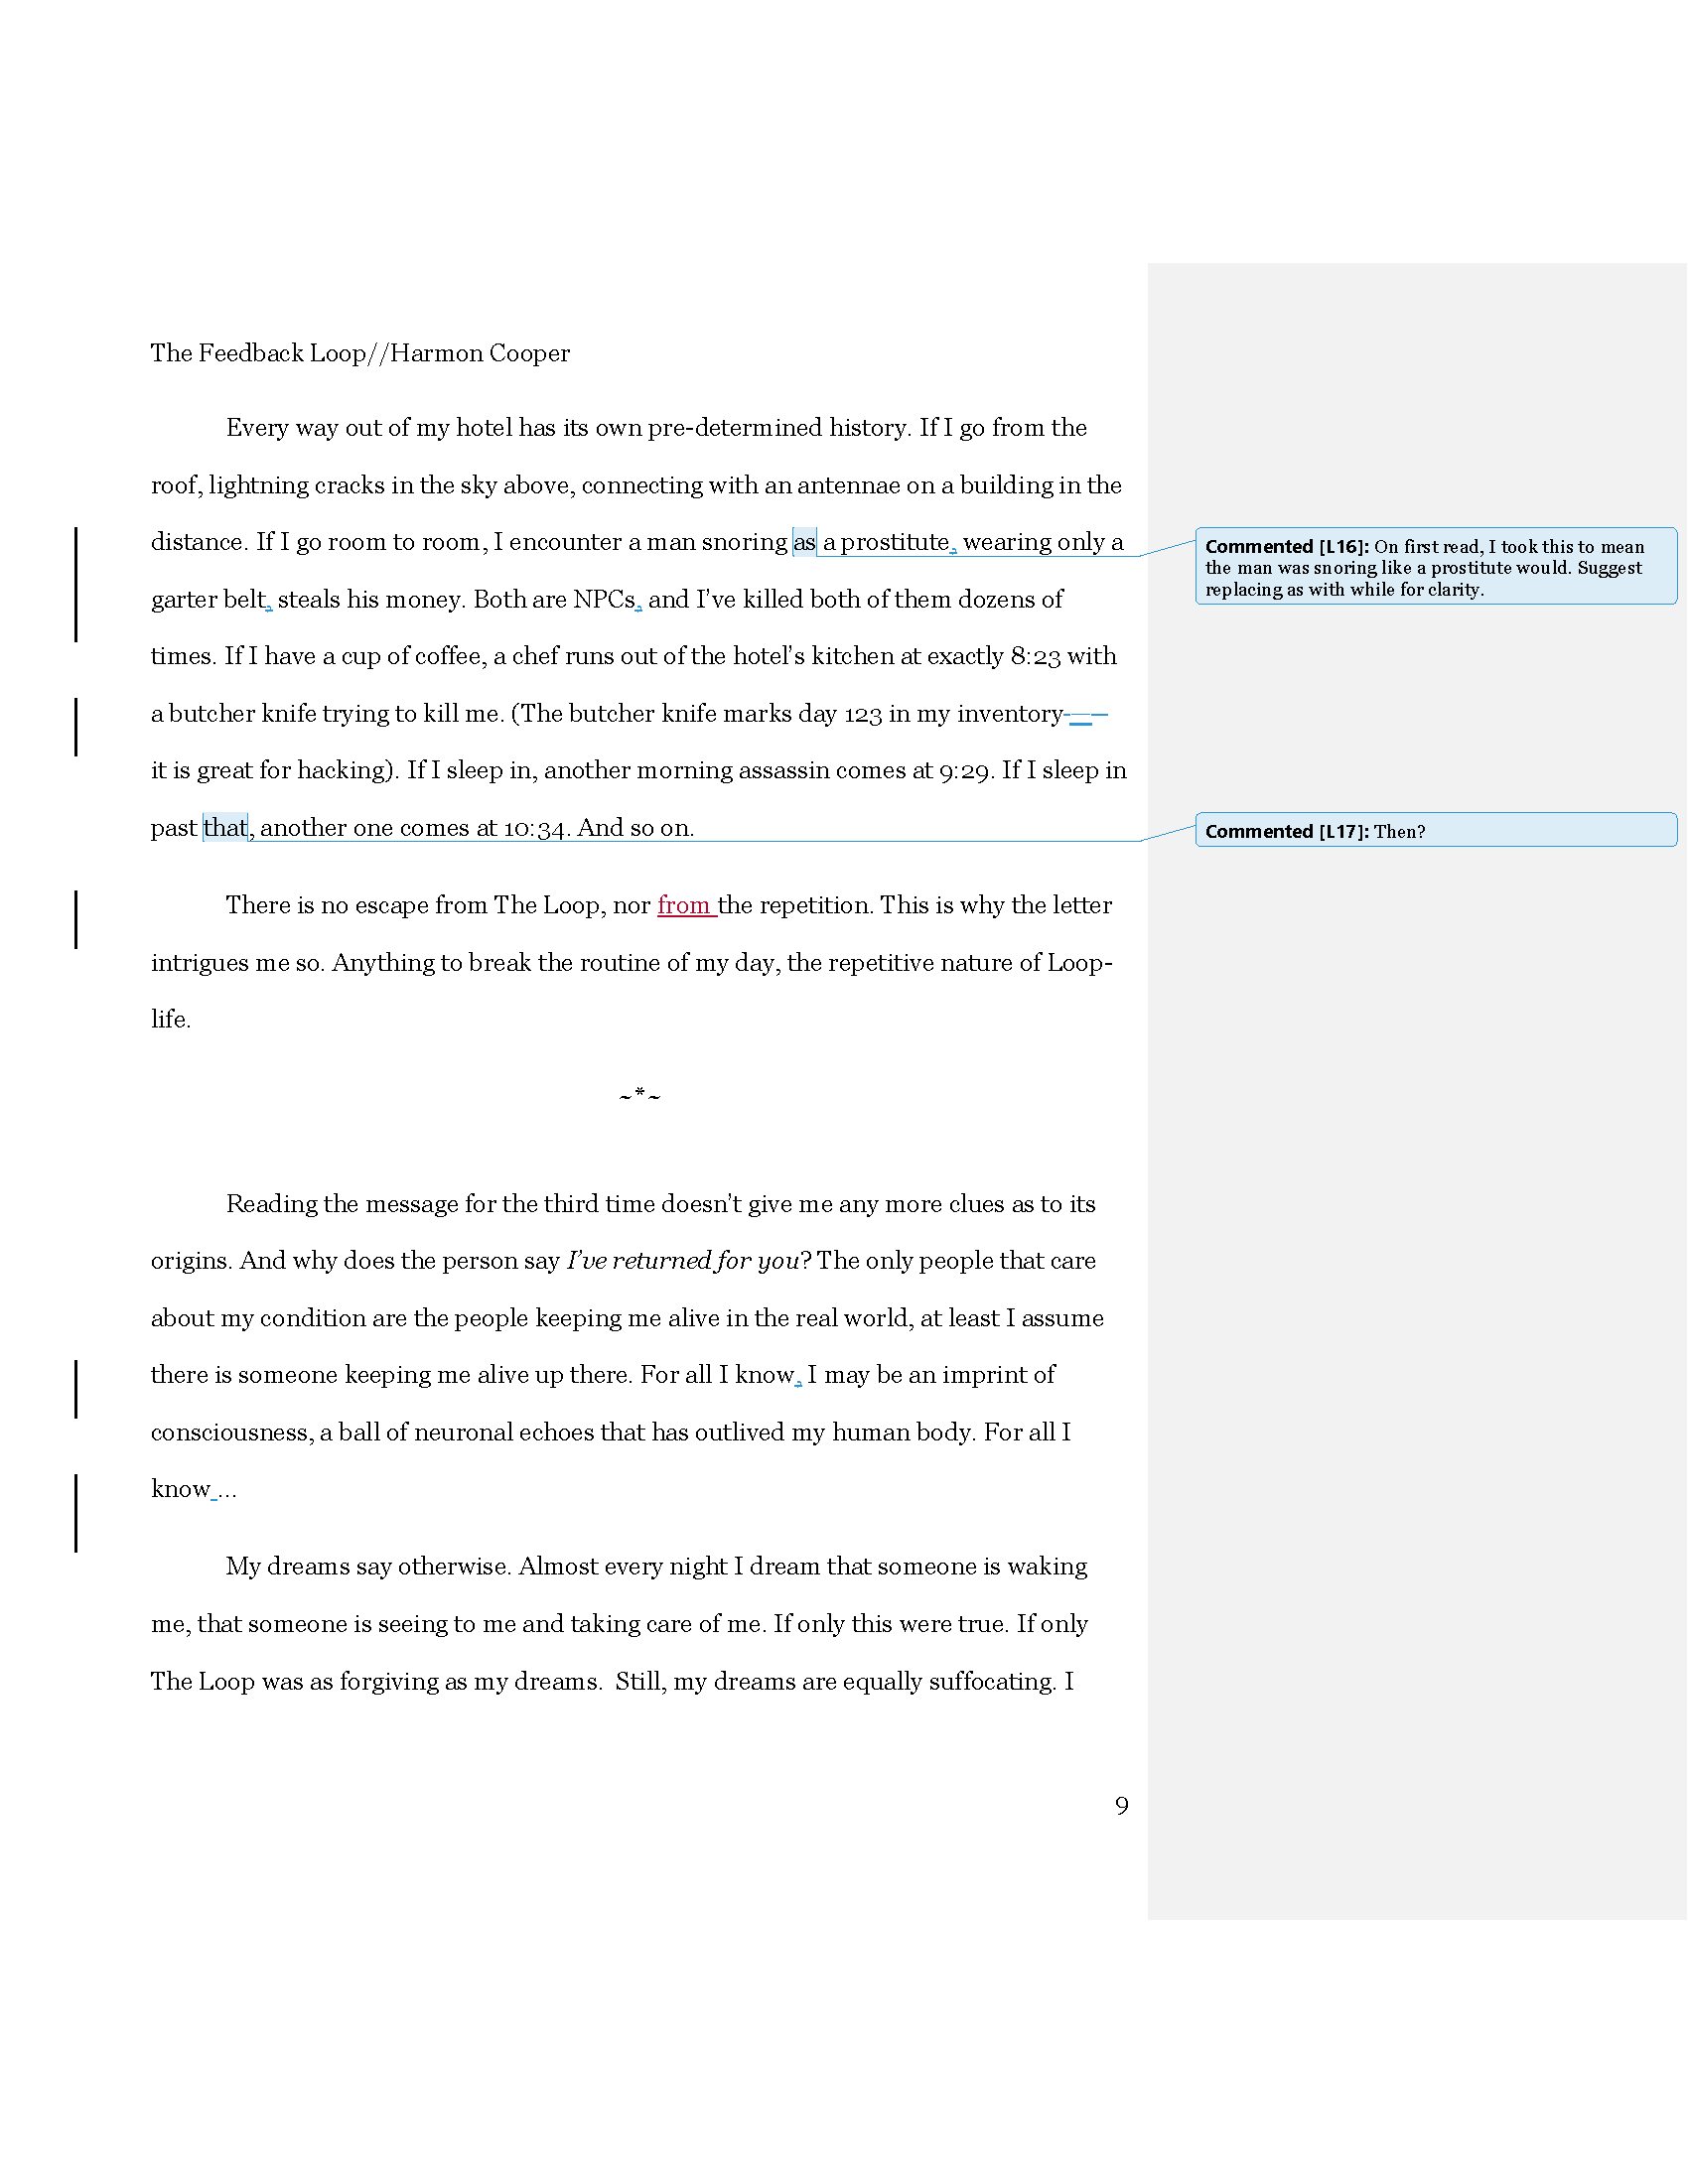 Episode 24 - Harmon Cooper - The Feedback Loop_Page_09.png